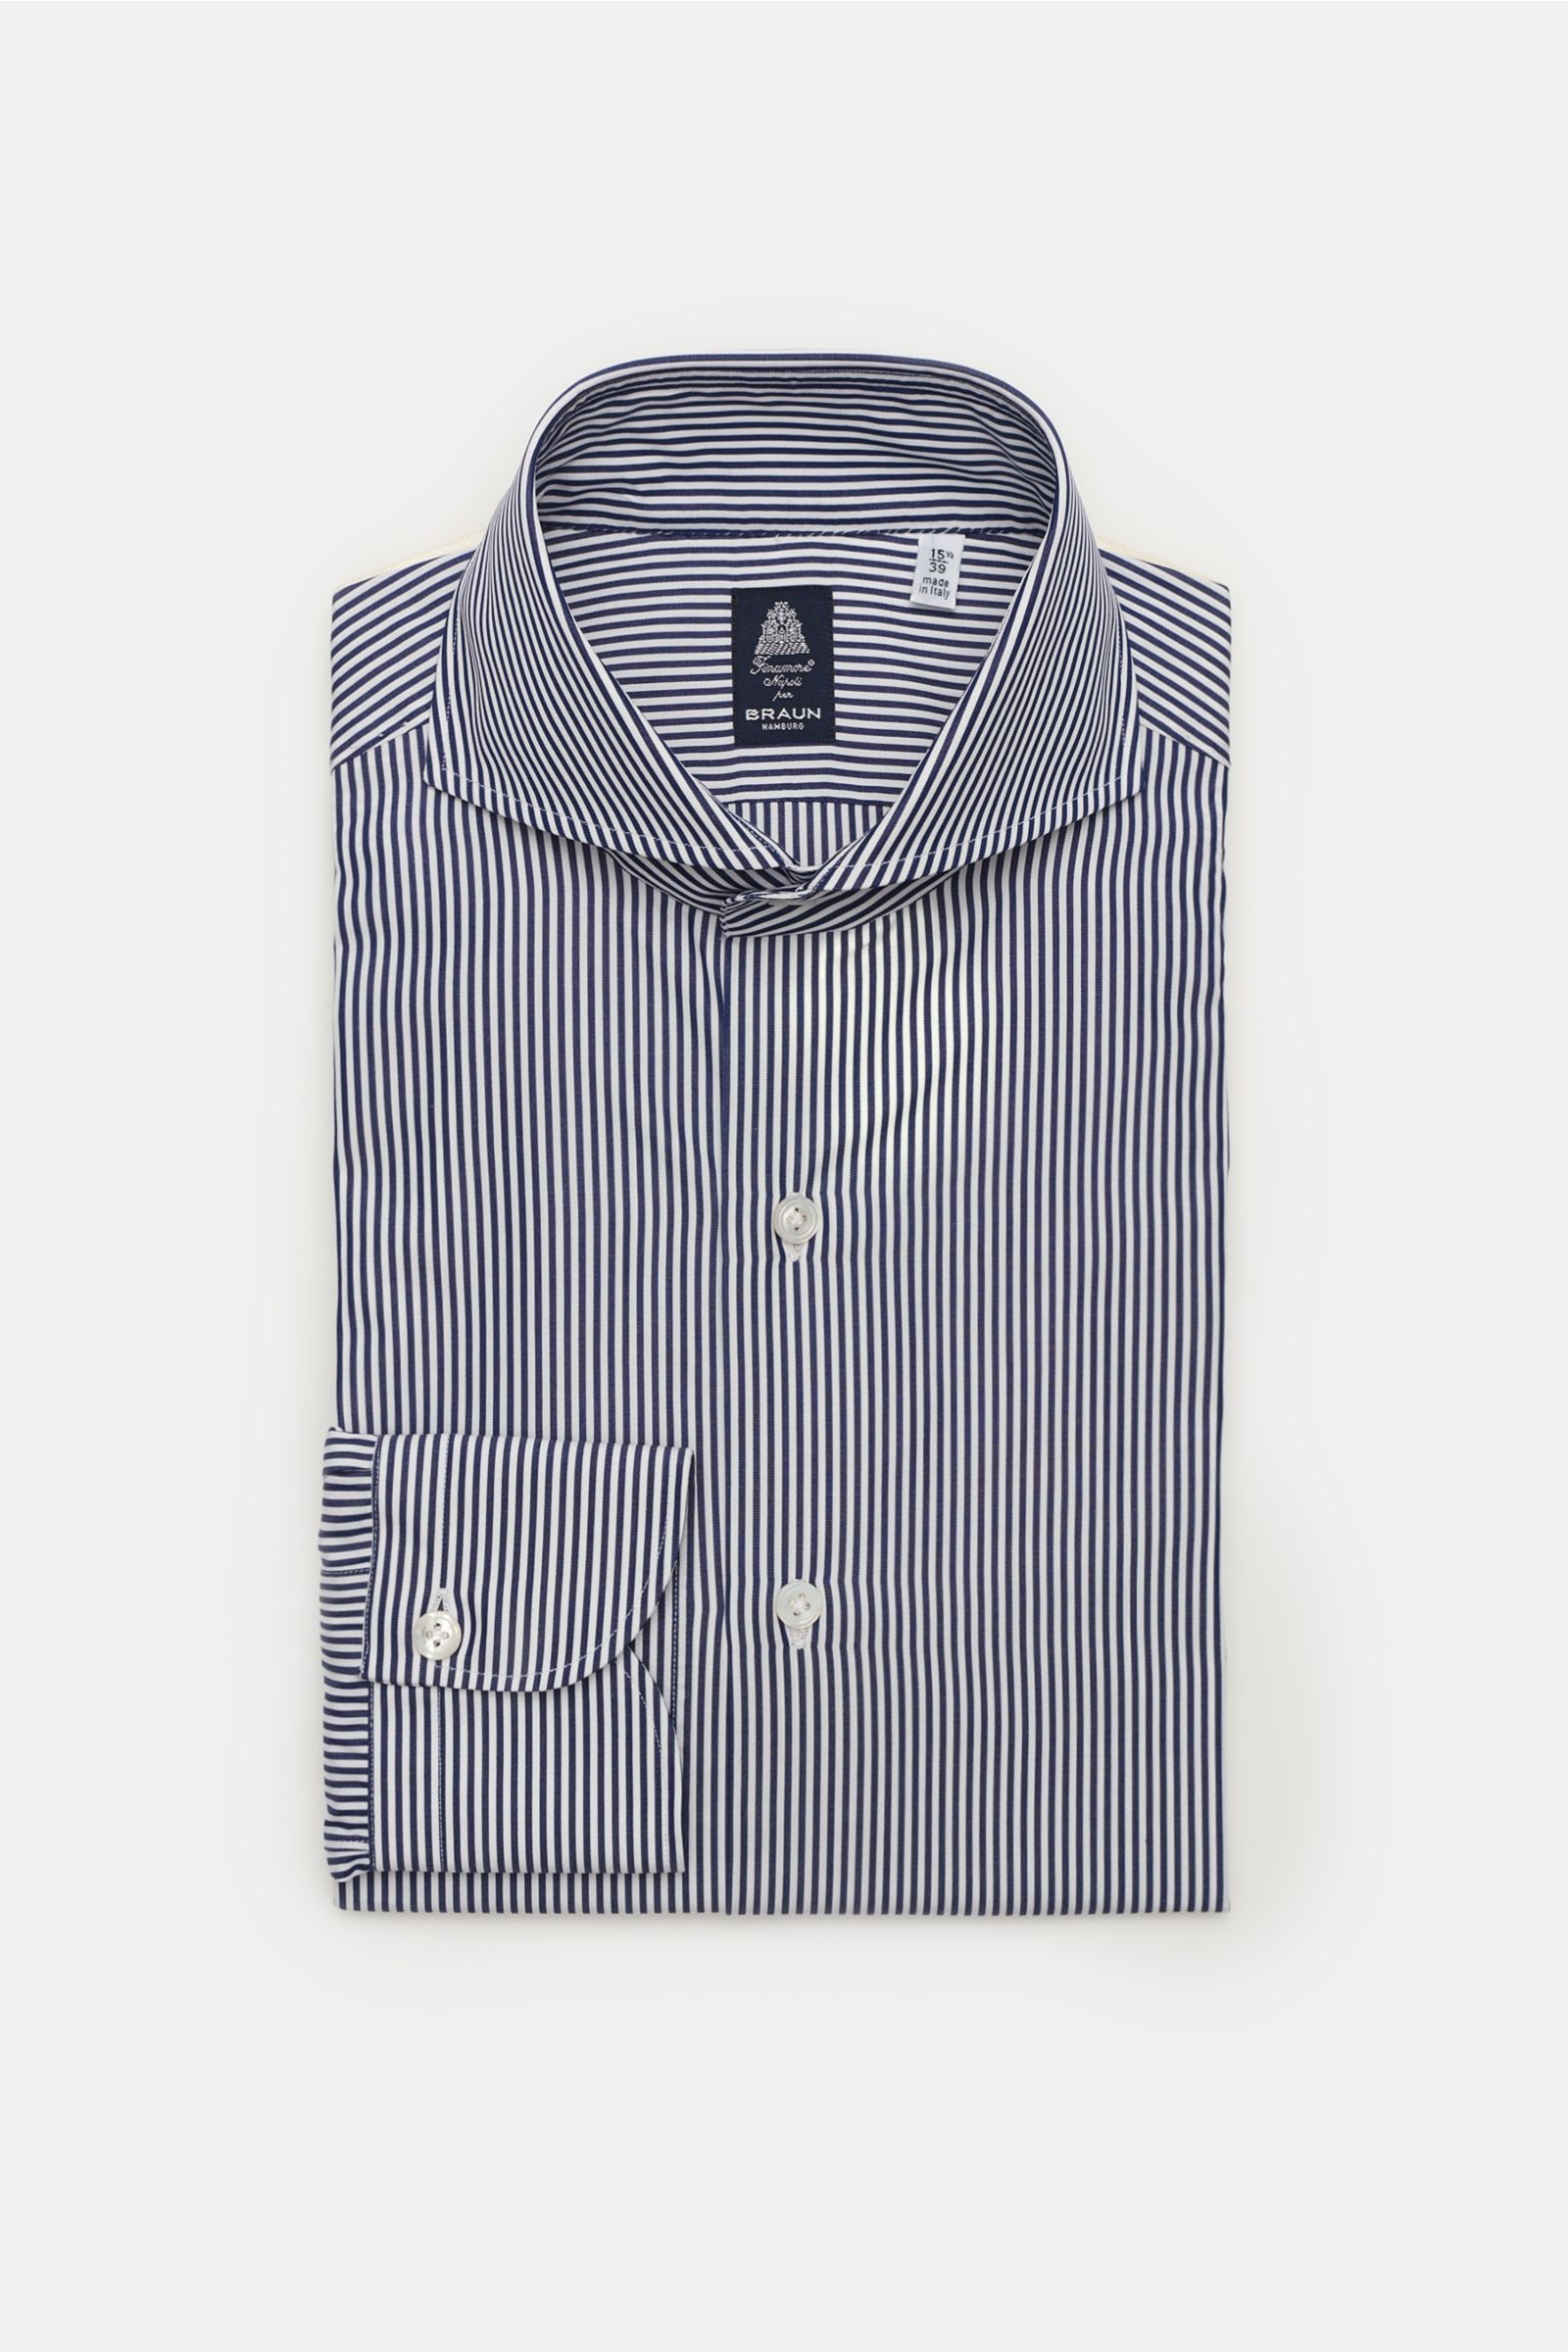 Business shirt 'Sergio Napoli' shark collar navy/white striped